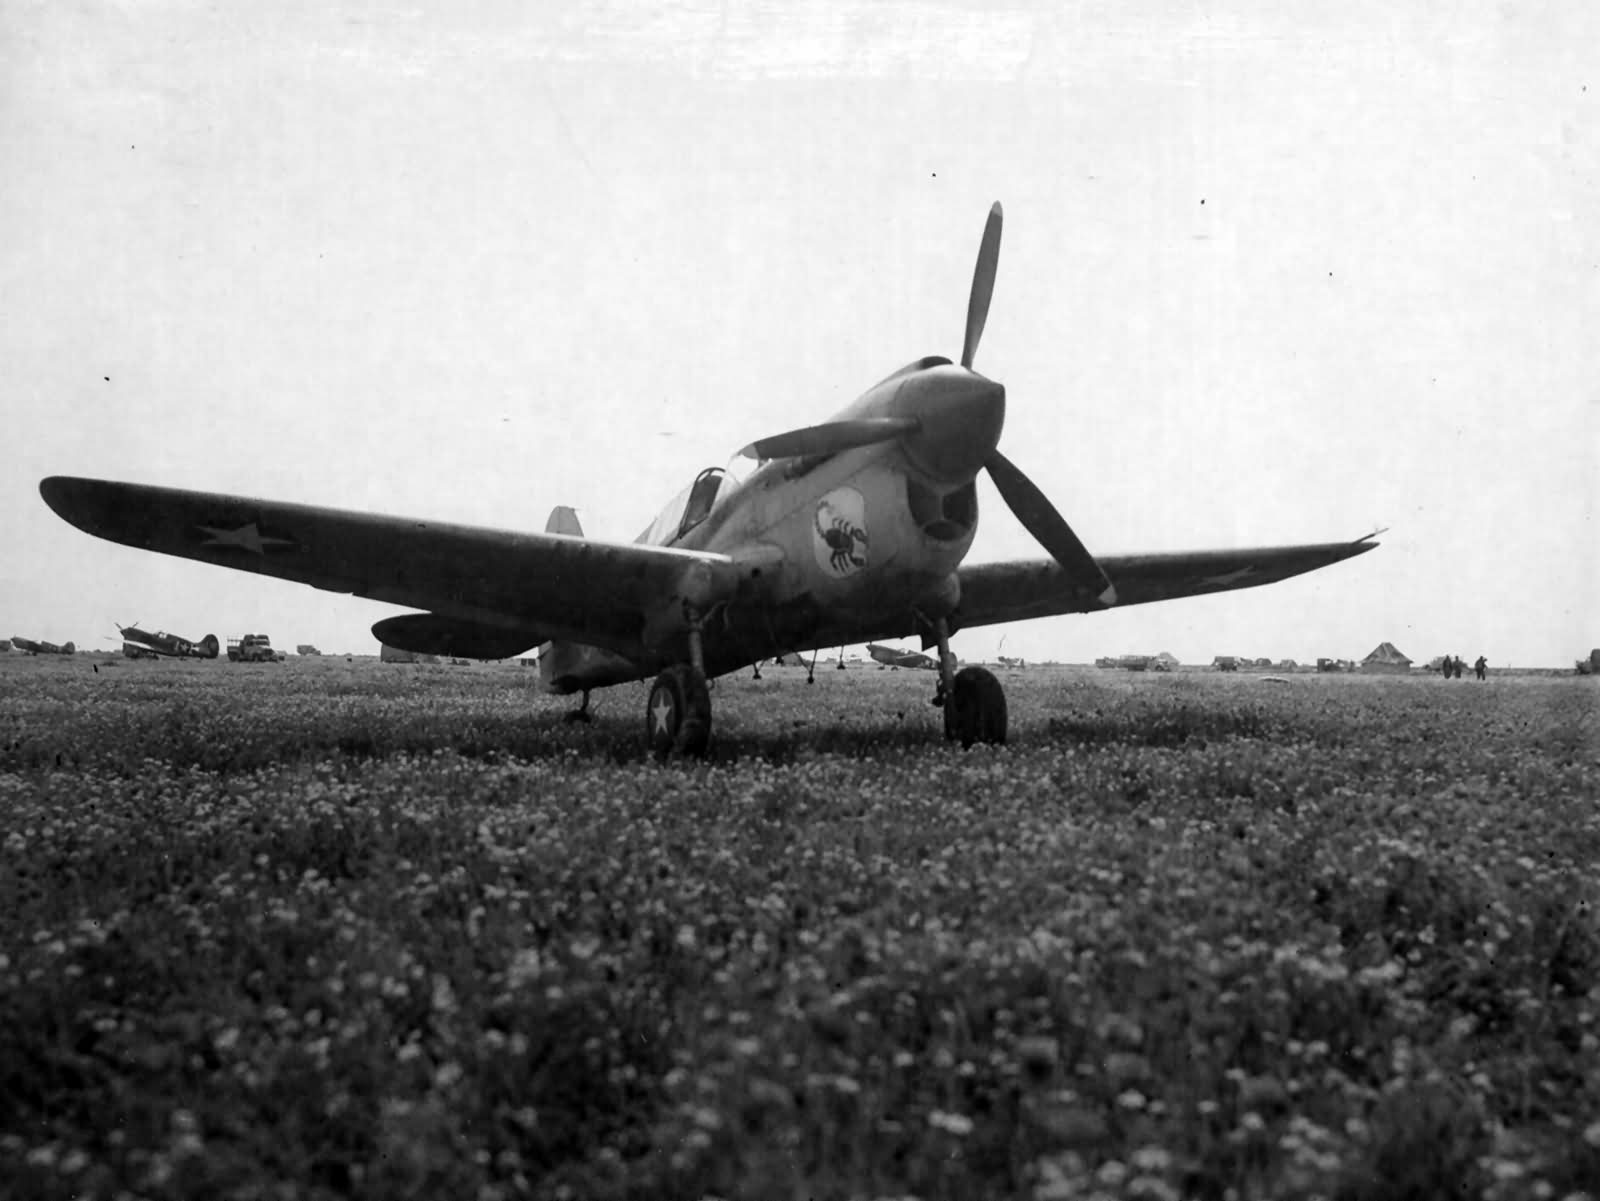 Curtiss_P-40K_Of_The_64th_FS_57Th_Fighte